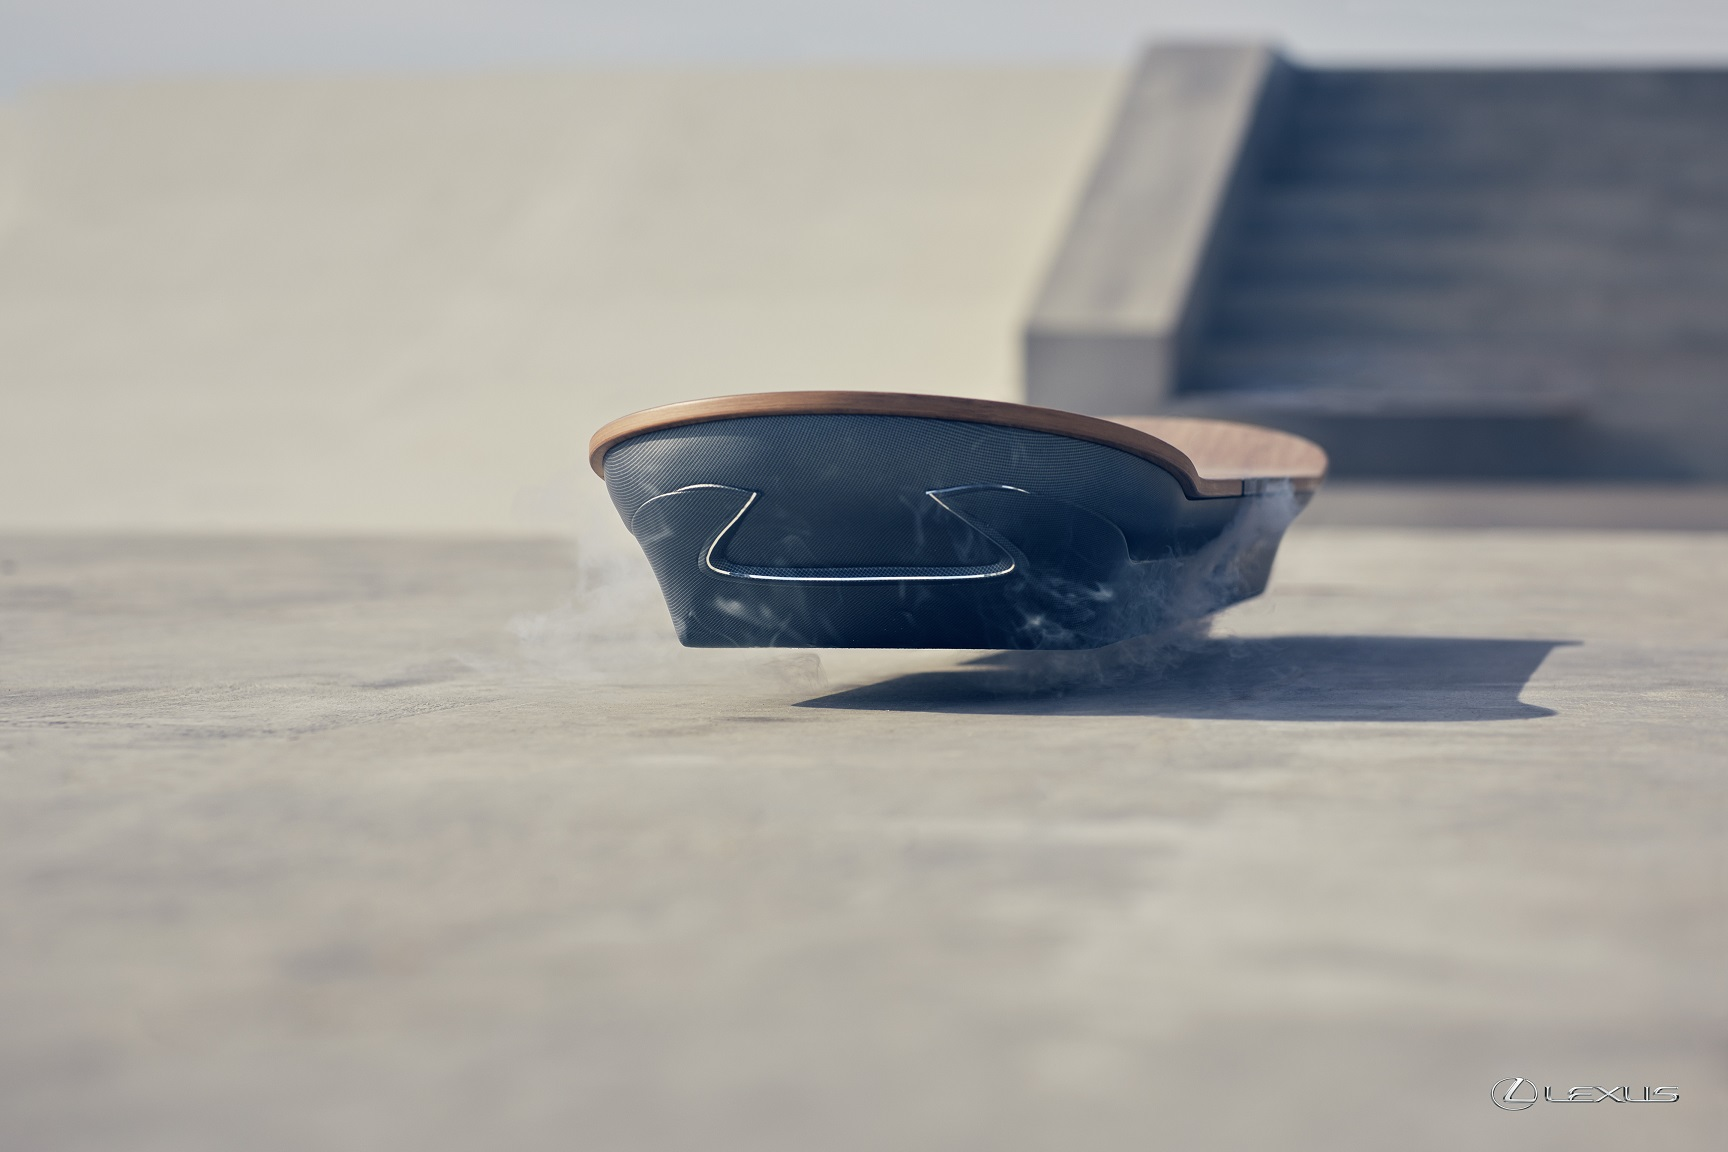 This hoverboard uses magnets instead of propellers to float.